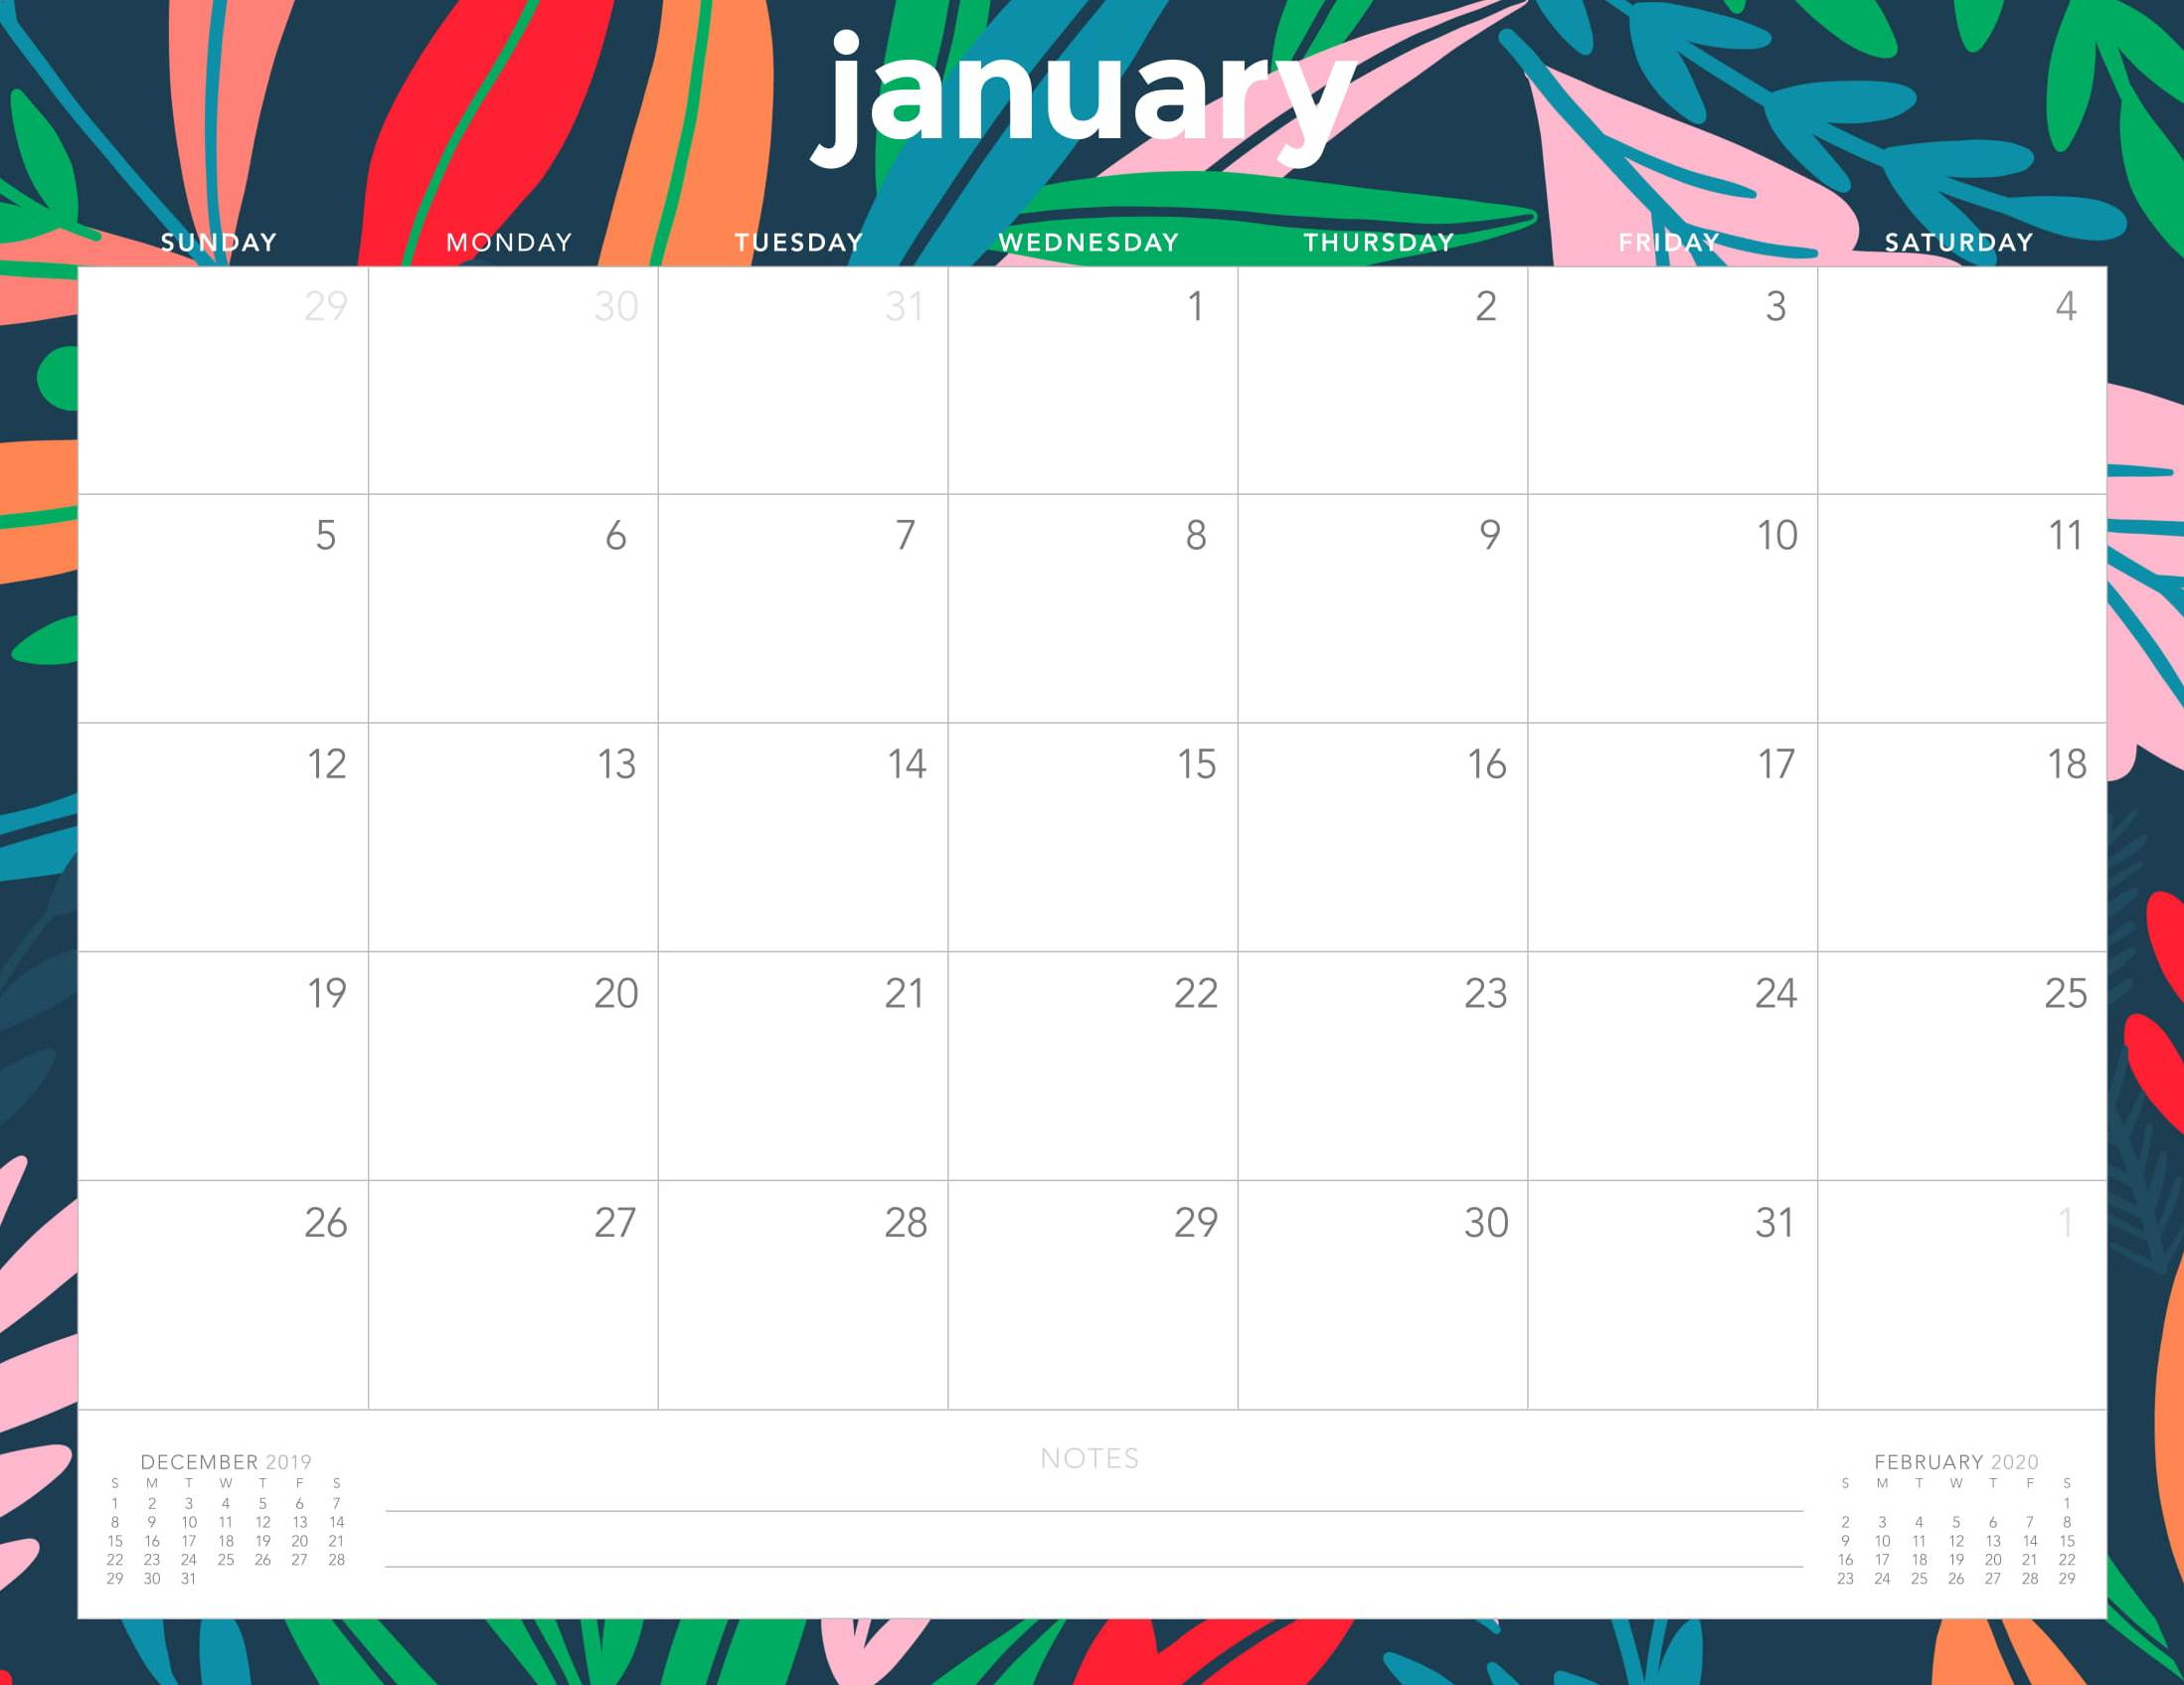 Monthly Calendar For January 2020 Template - Set Your Plan